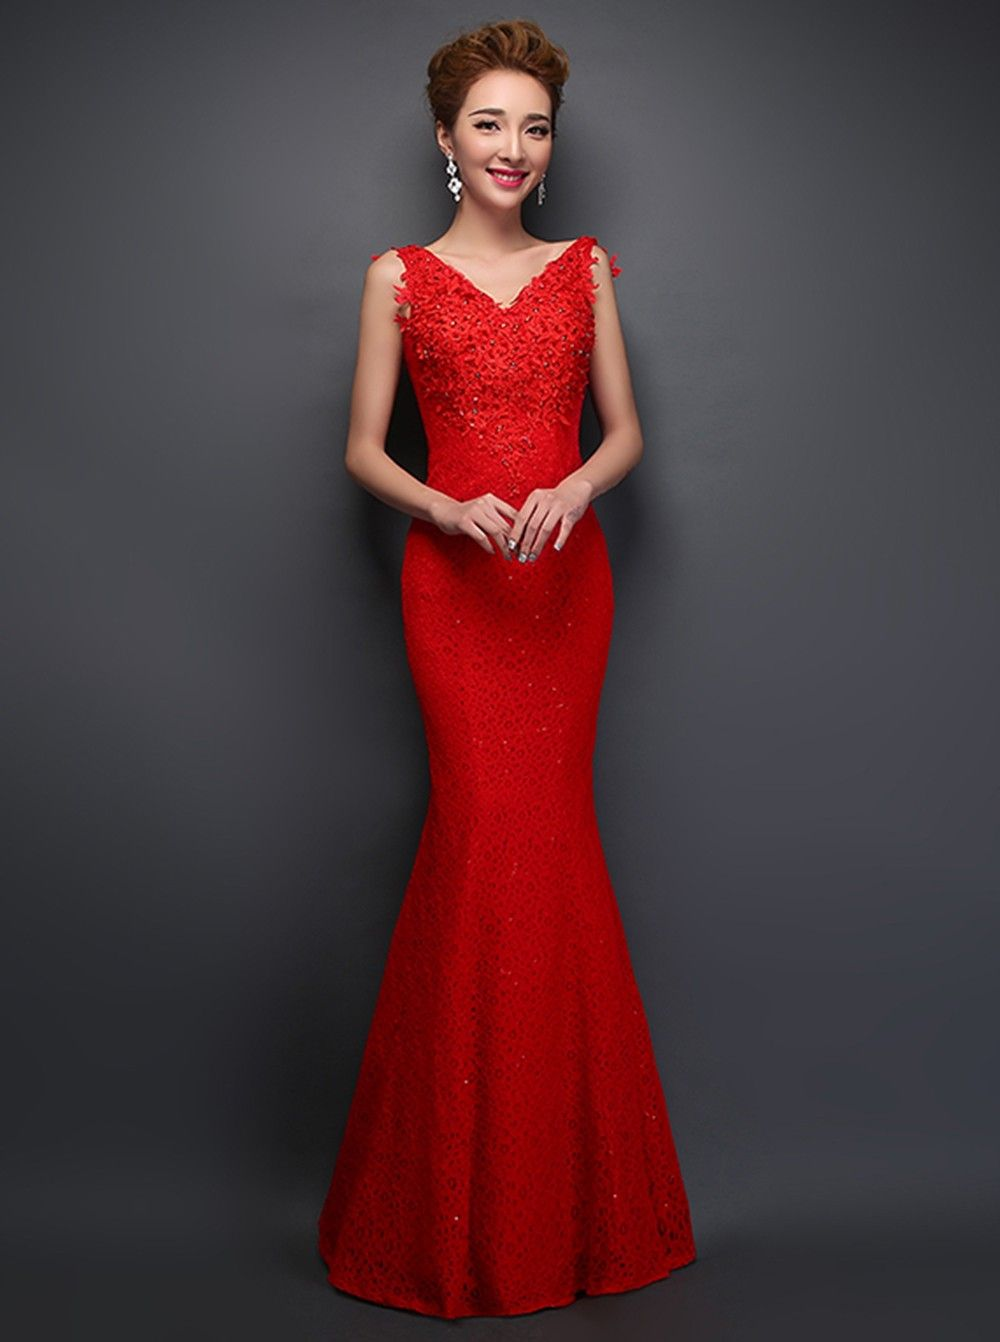 Mermaid V-neck Floor-length Lace Lace-up Red Prom Dress With Appliques  Beading cc2a14402